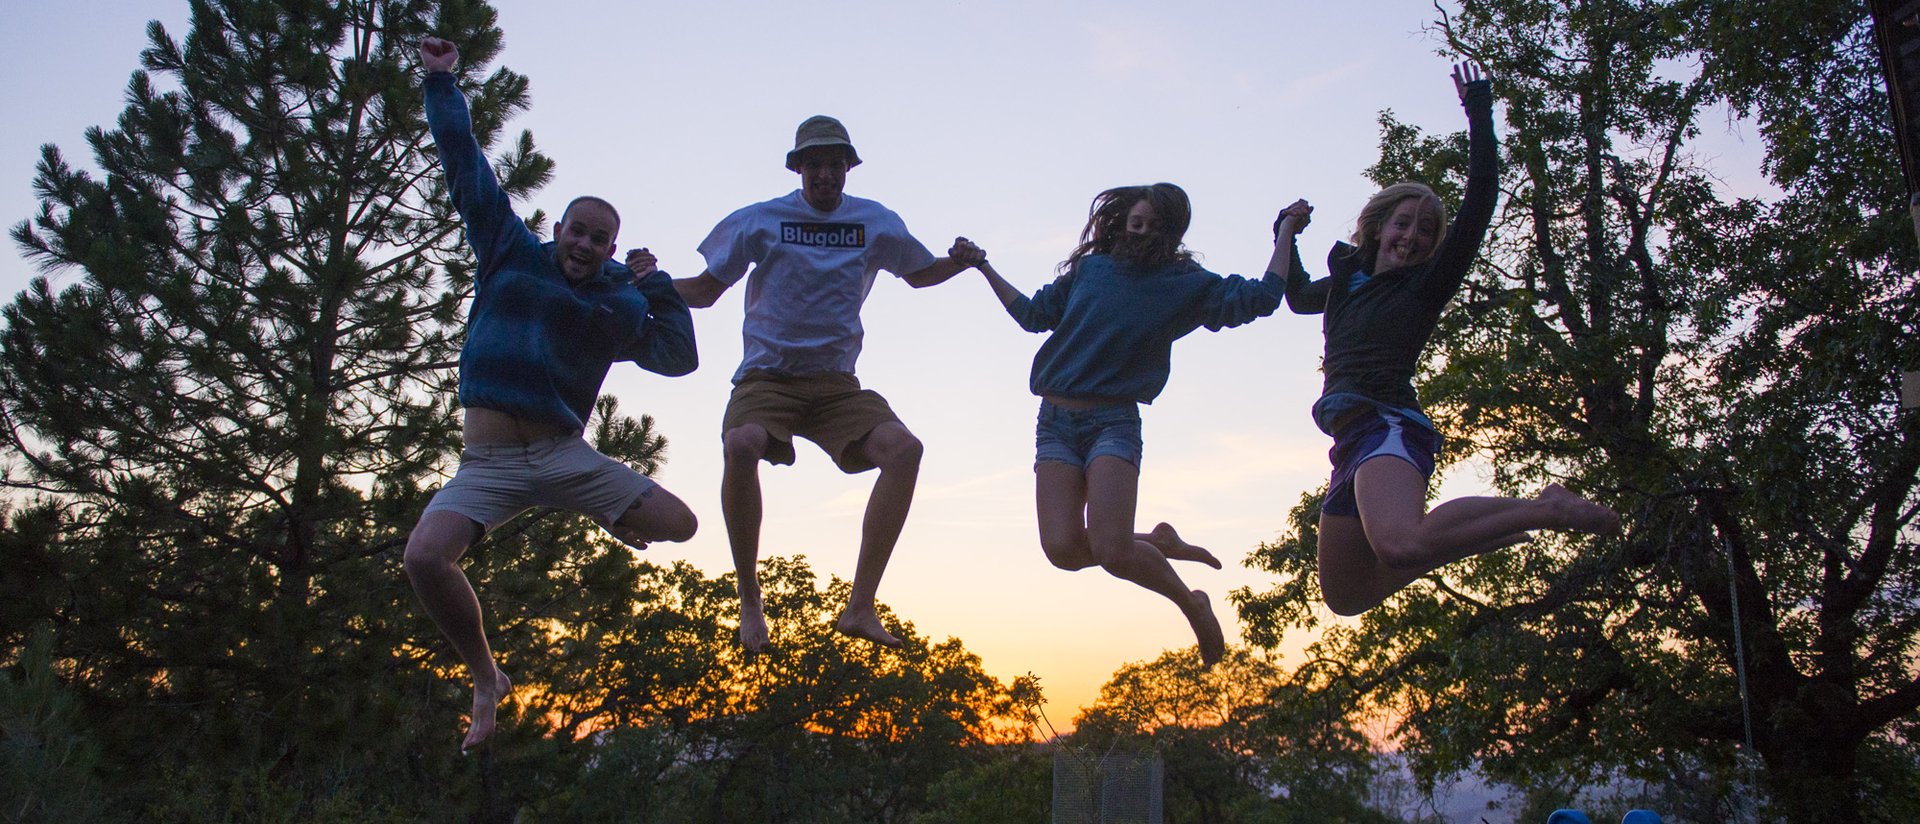 Students jumping at Yosemite National Park